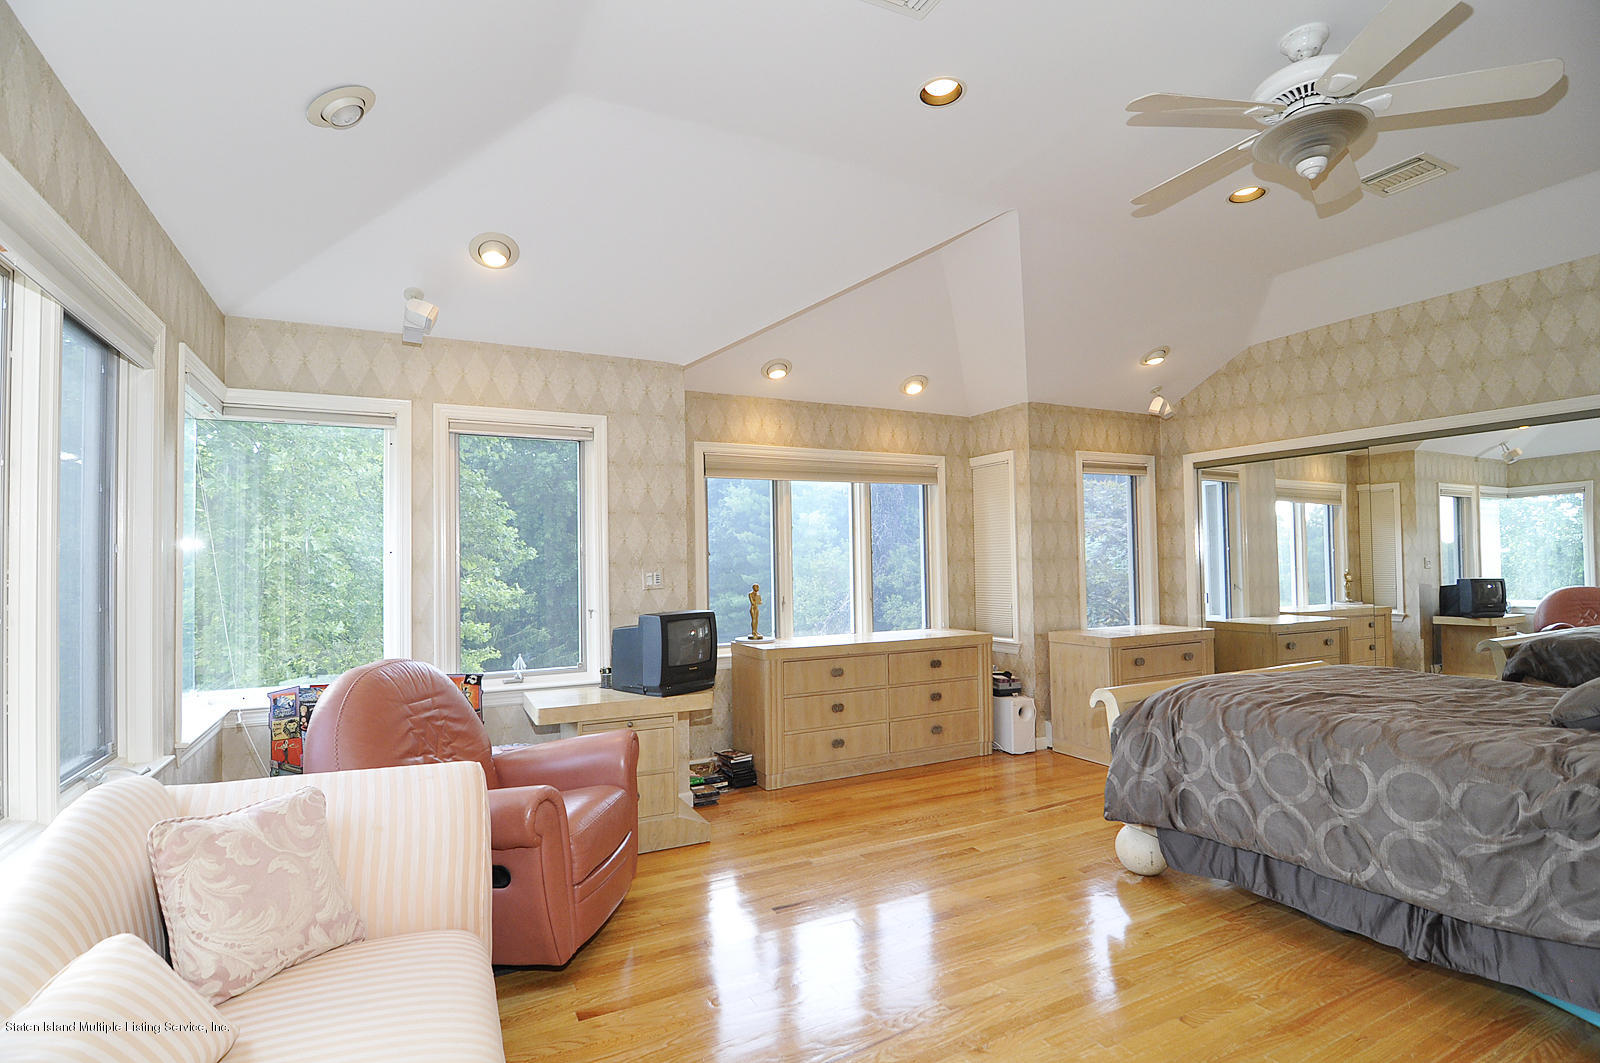 Single Family - Detached 738 Todt Hill Road  Staten Island, NY 10301, MLS-1127956-12